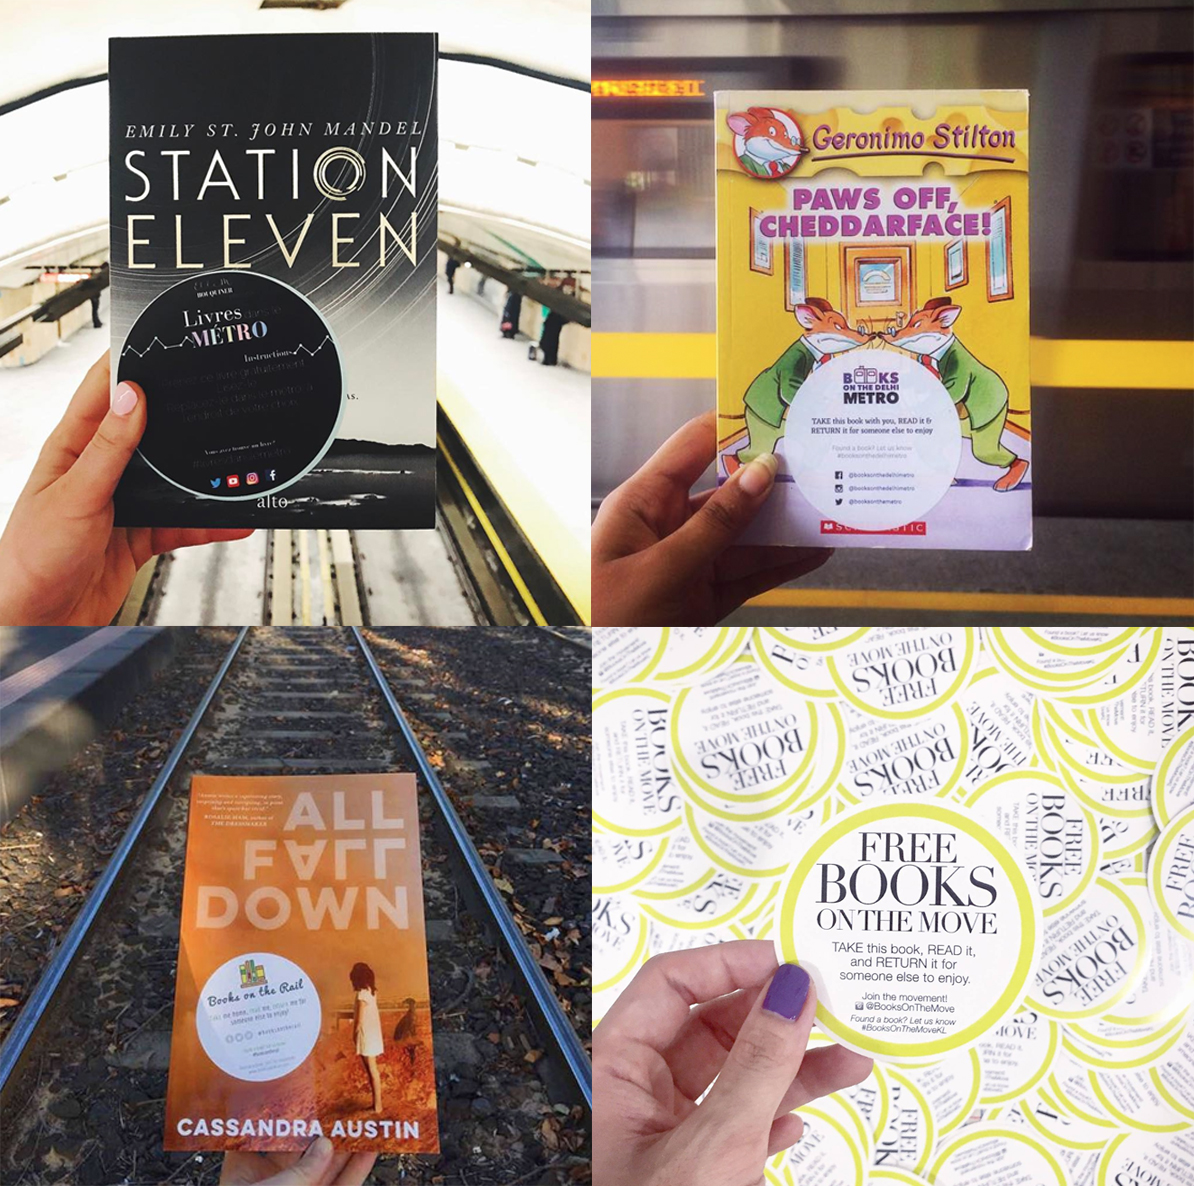 BOOKS ON THE MOVE GLOBAL - Not in New York? Don't worry!We have branches already set up in multiple cities around the world.Head over to Books On The Move Global to see if there's one in your city. If not, you can start your own!